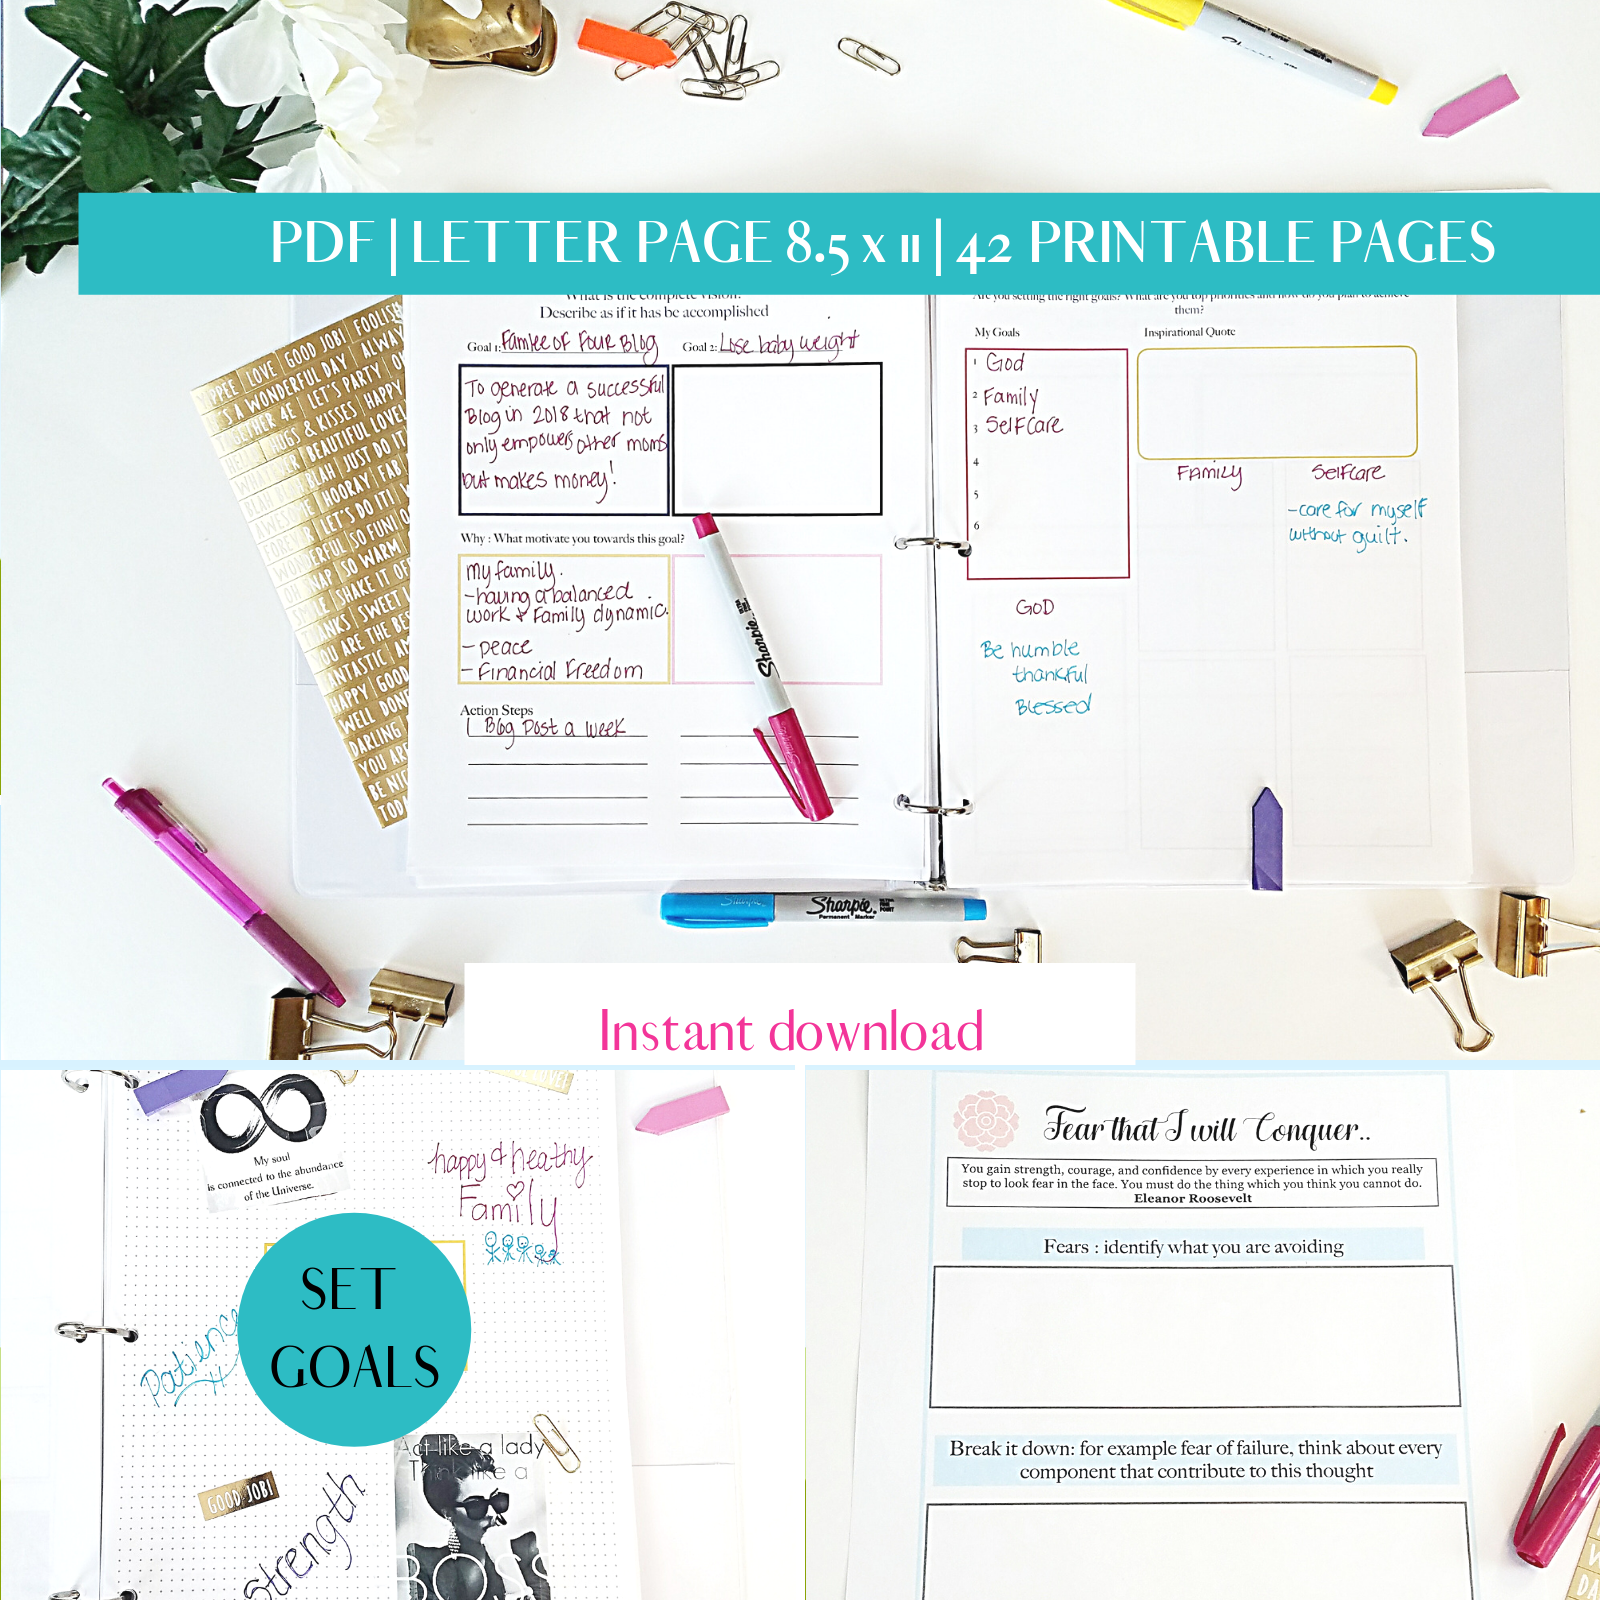 MOM PLANNER PDF LETTER PAGE 8.5 x 11 42 PRINTABLE PAGES 2